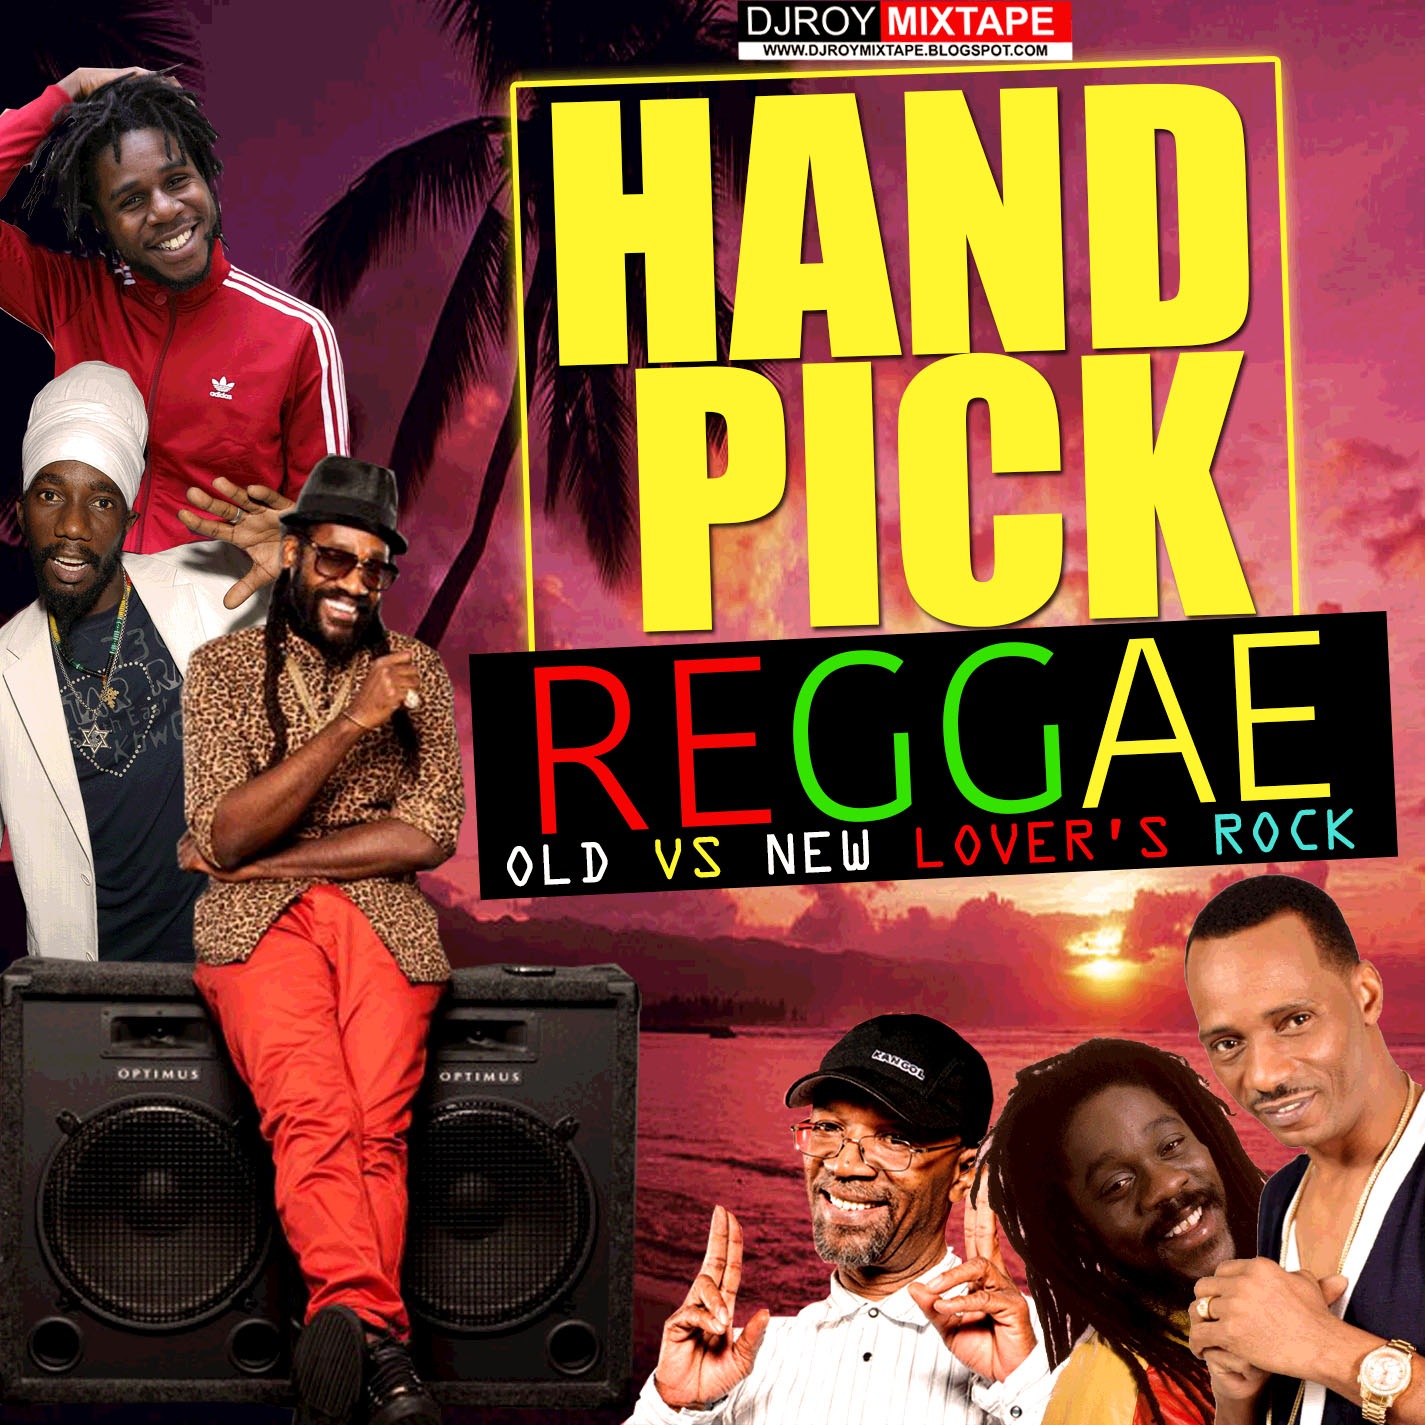 DJROYMIXTAPE : DJ ROY HAND PICK REGGAE LOVERS ROCK MIX